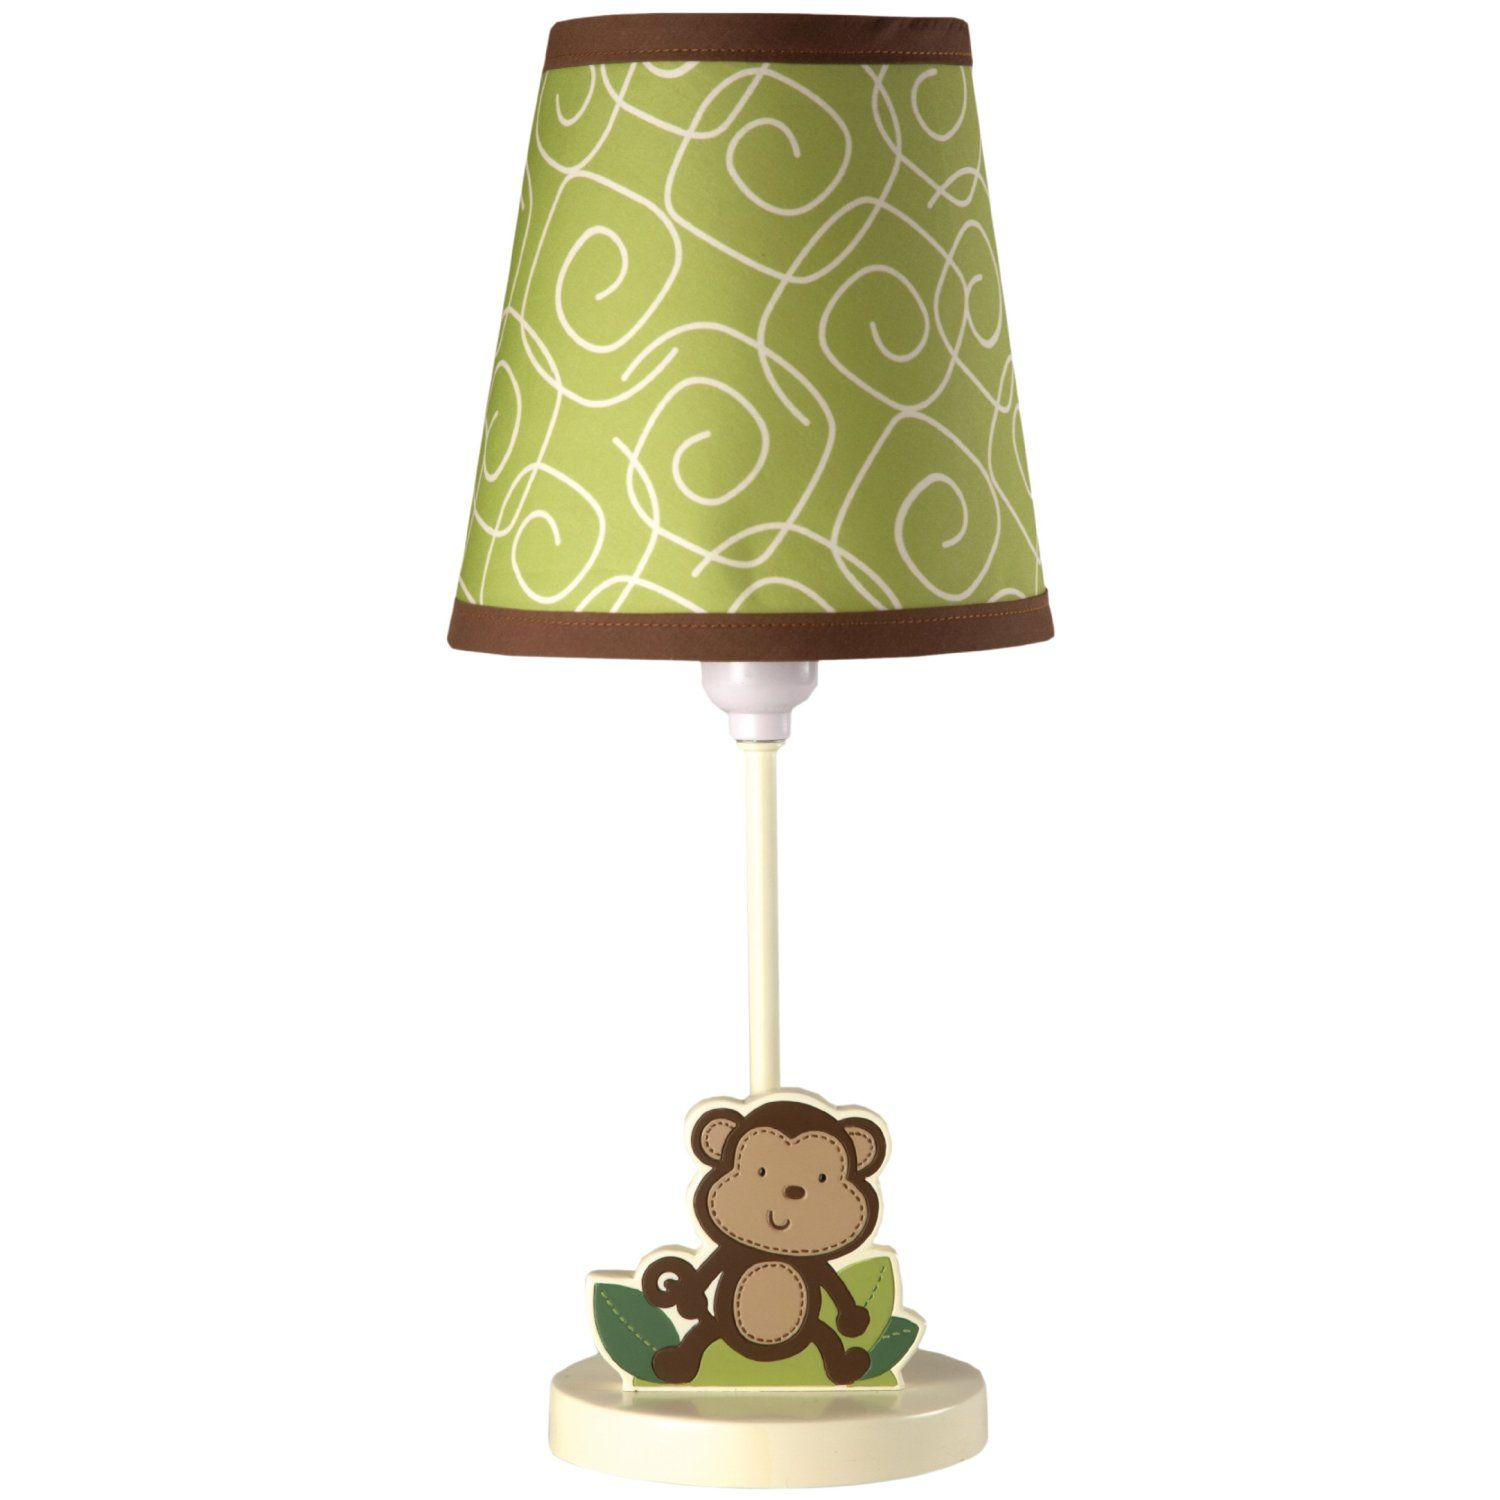 Baby Table Lamps Monkey Desk Lamp Fine Furnitures Pinterest Desk Lamp